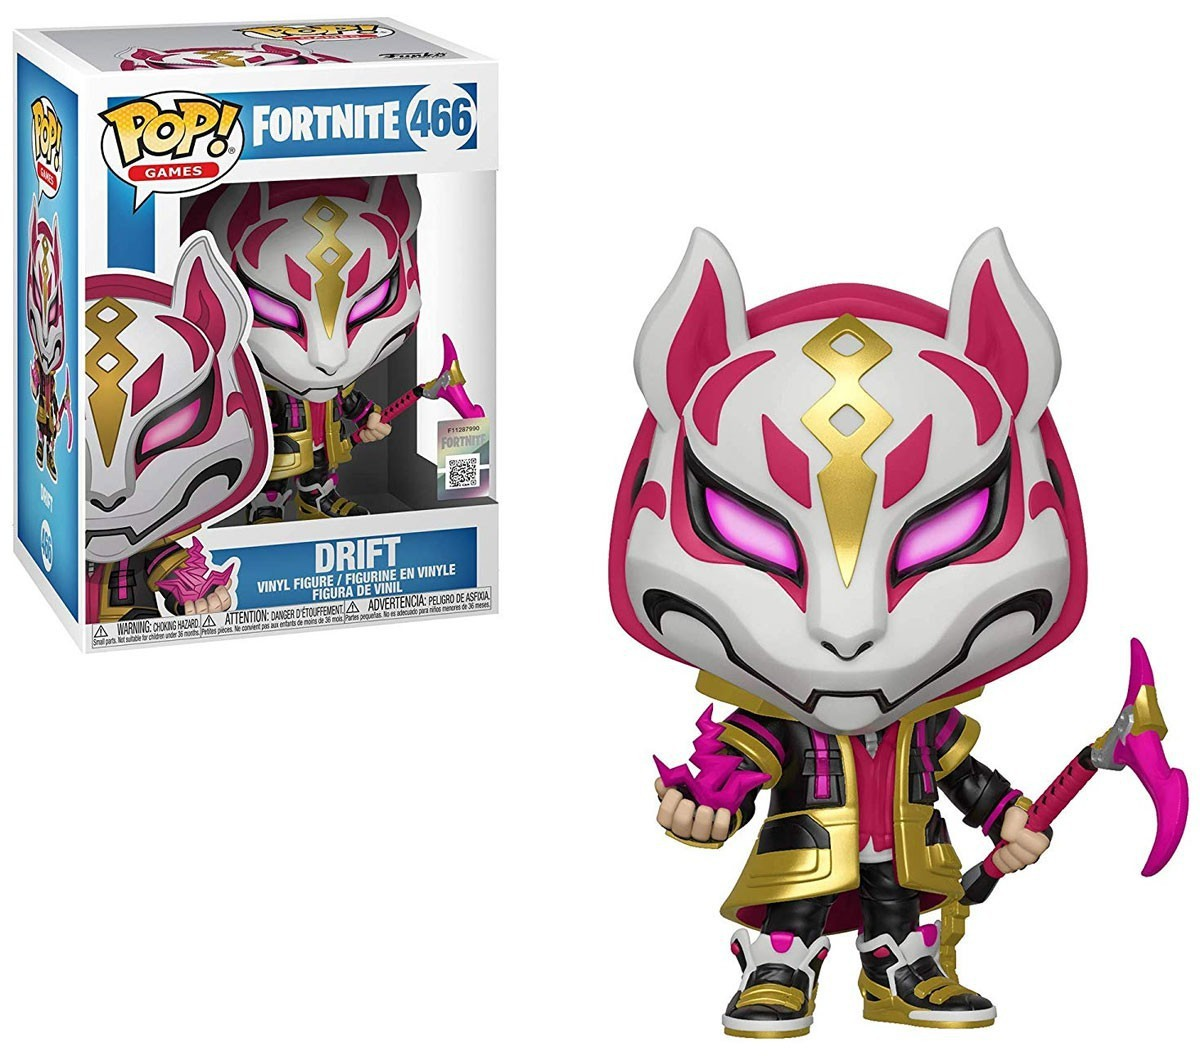 POP FUNKO 466 DRIFT FORTNITE